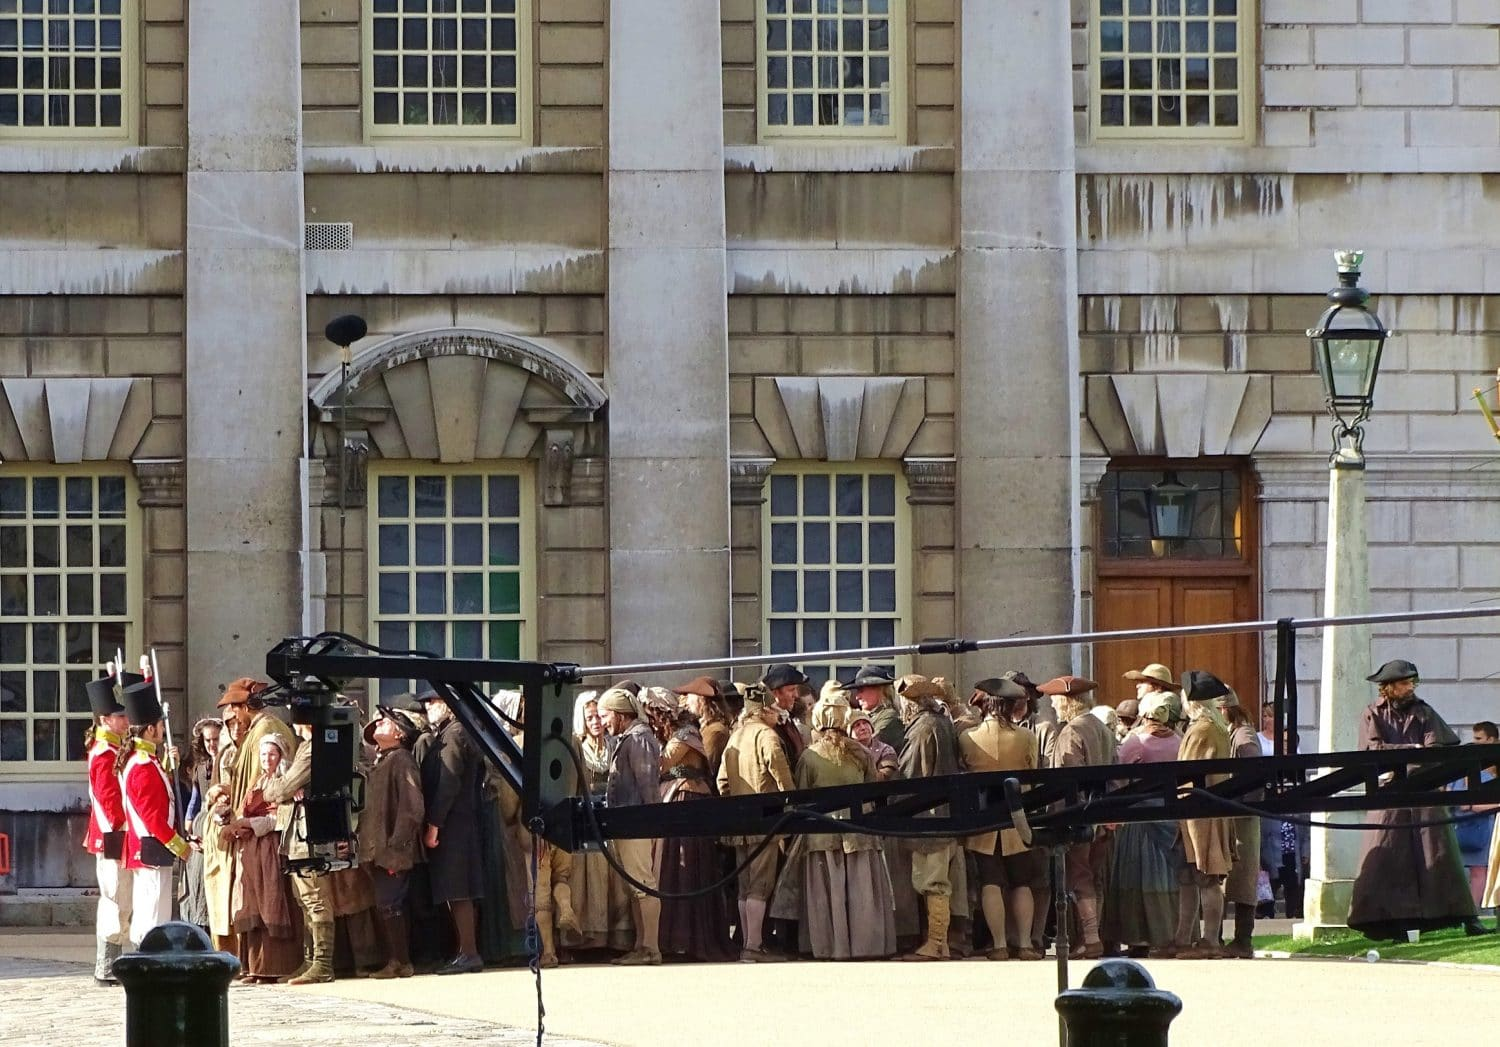 Parts of the BBC Poldark series were filmed in Greenwich